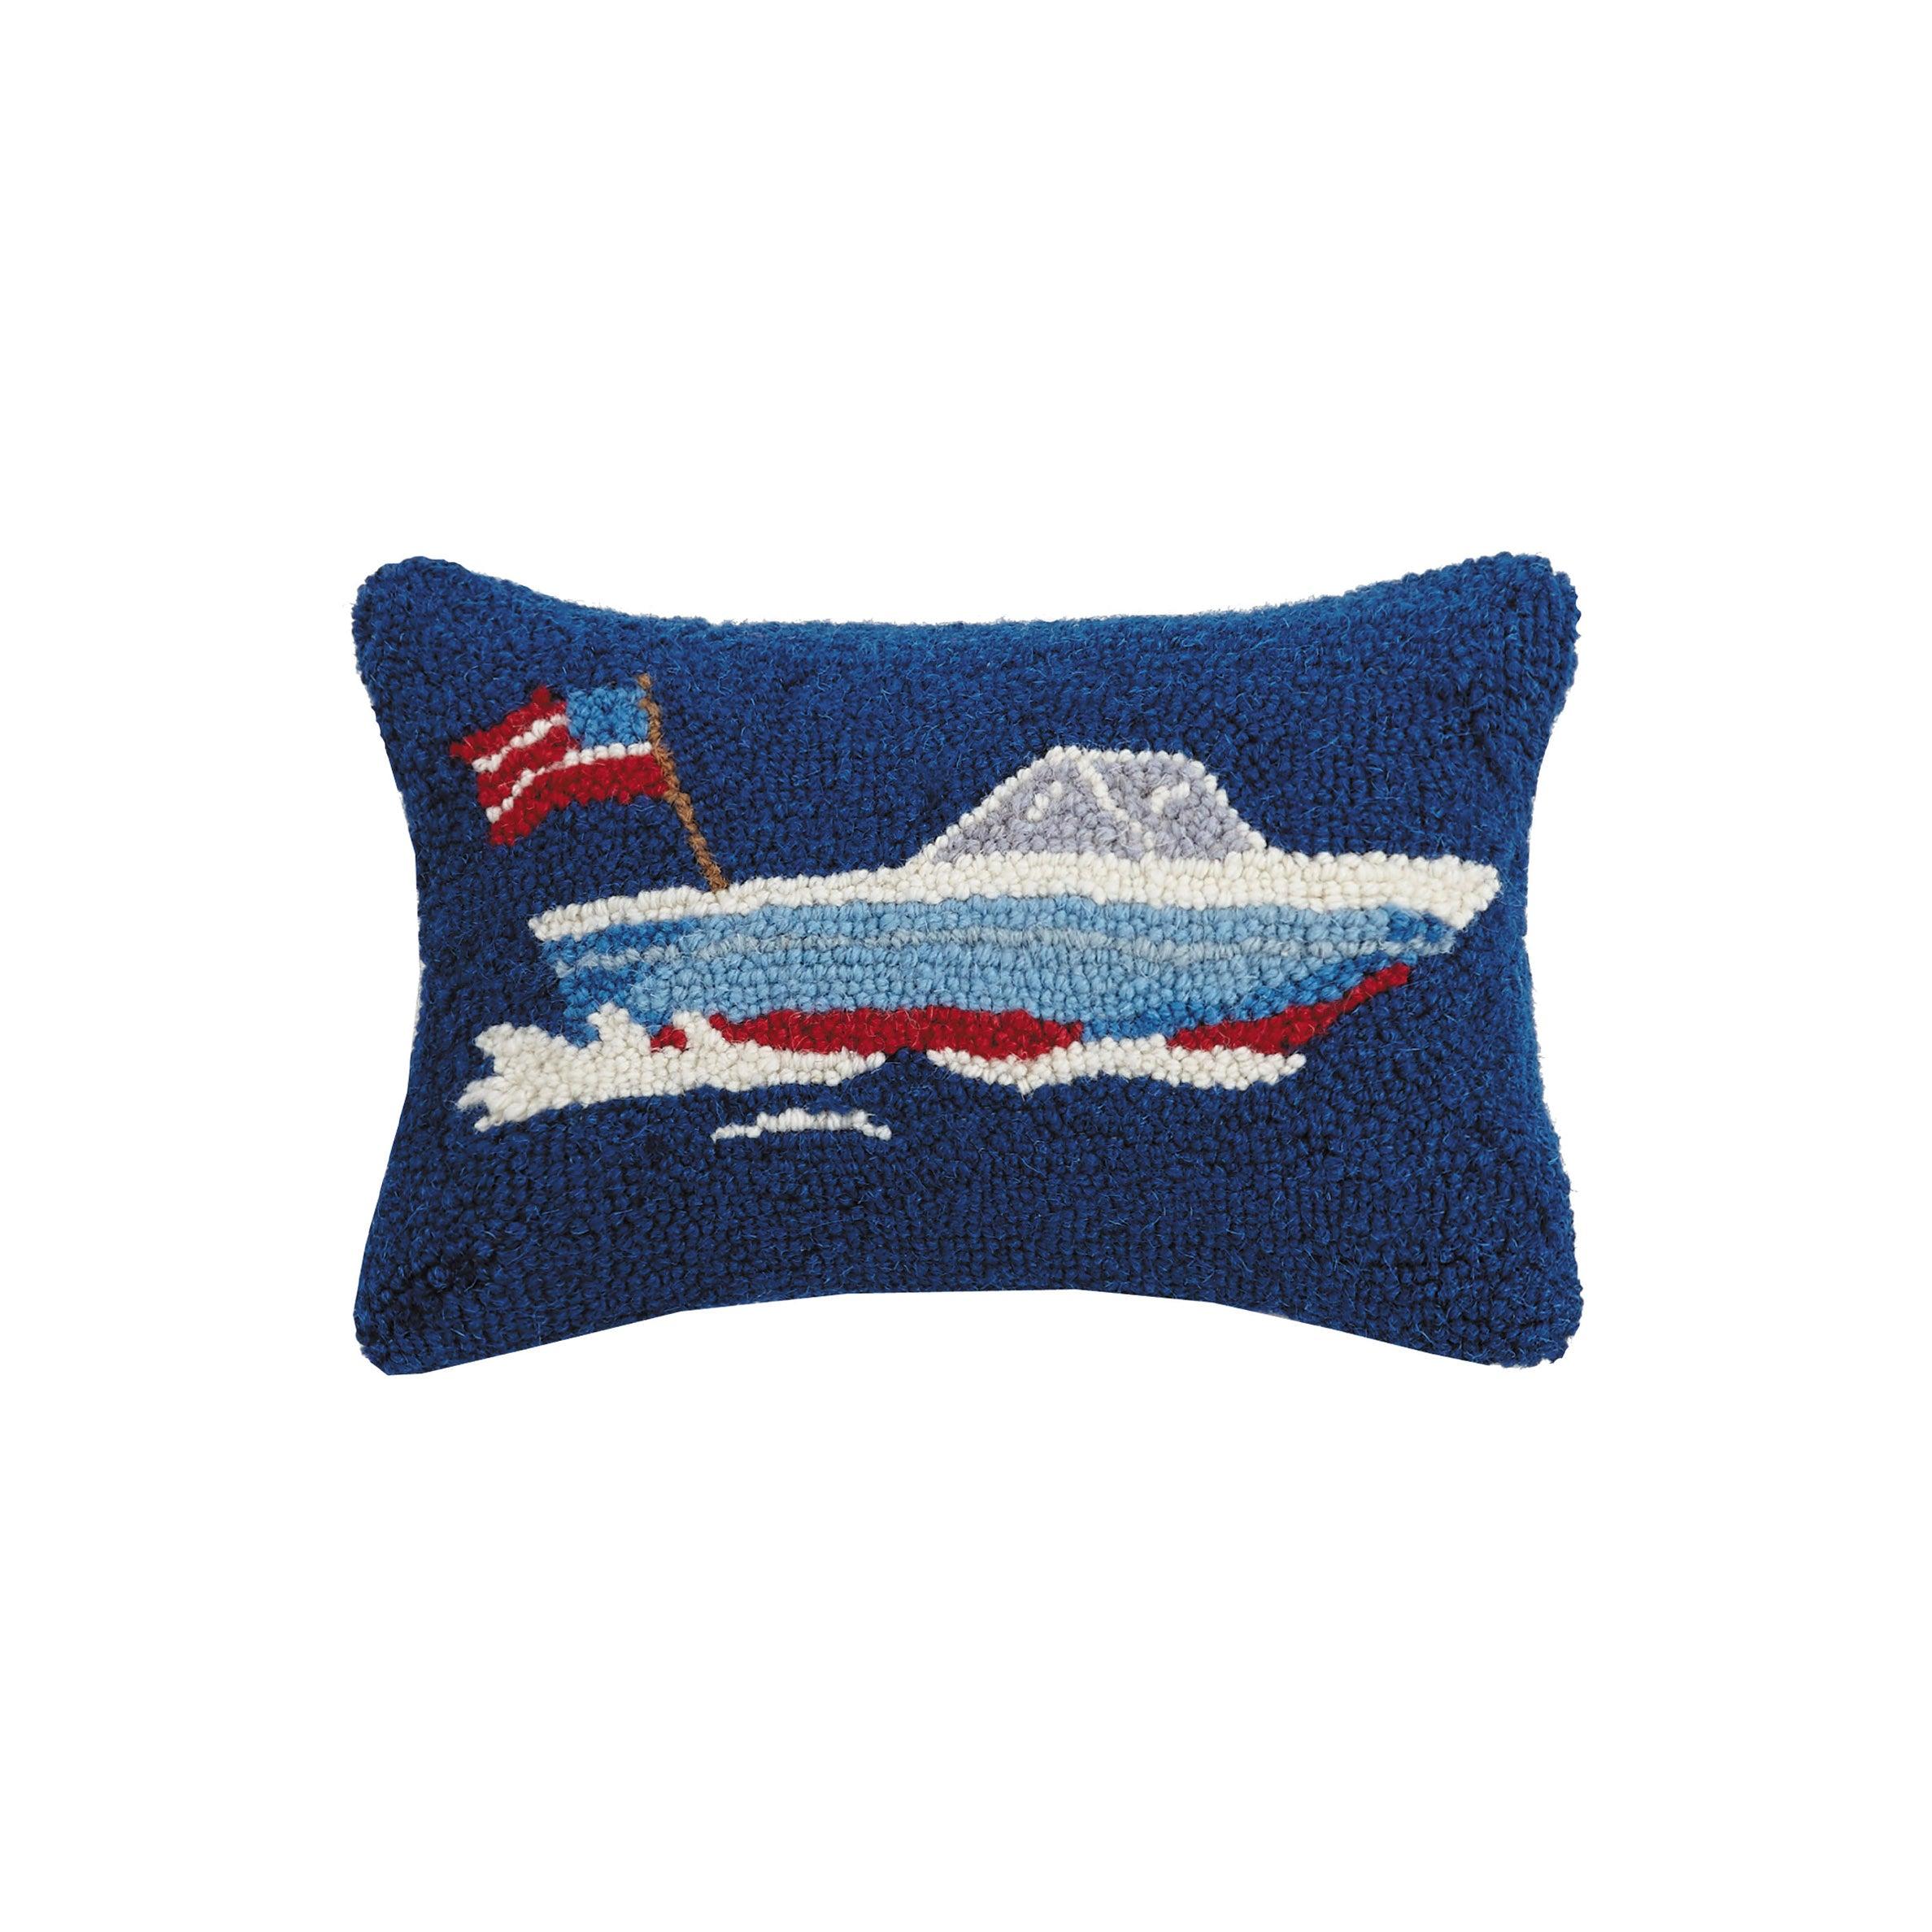 Speed Boat Hook Pillow